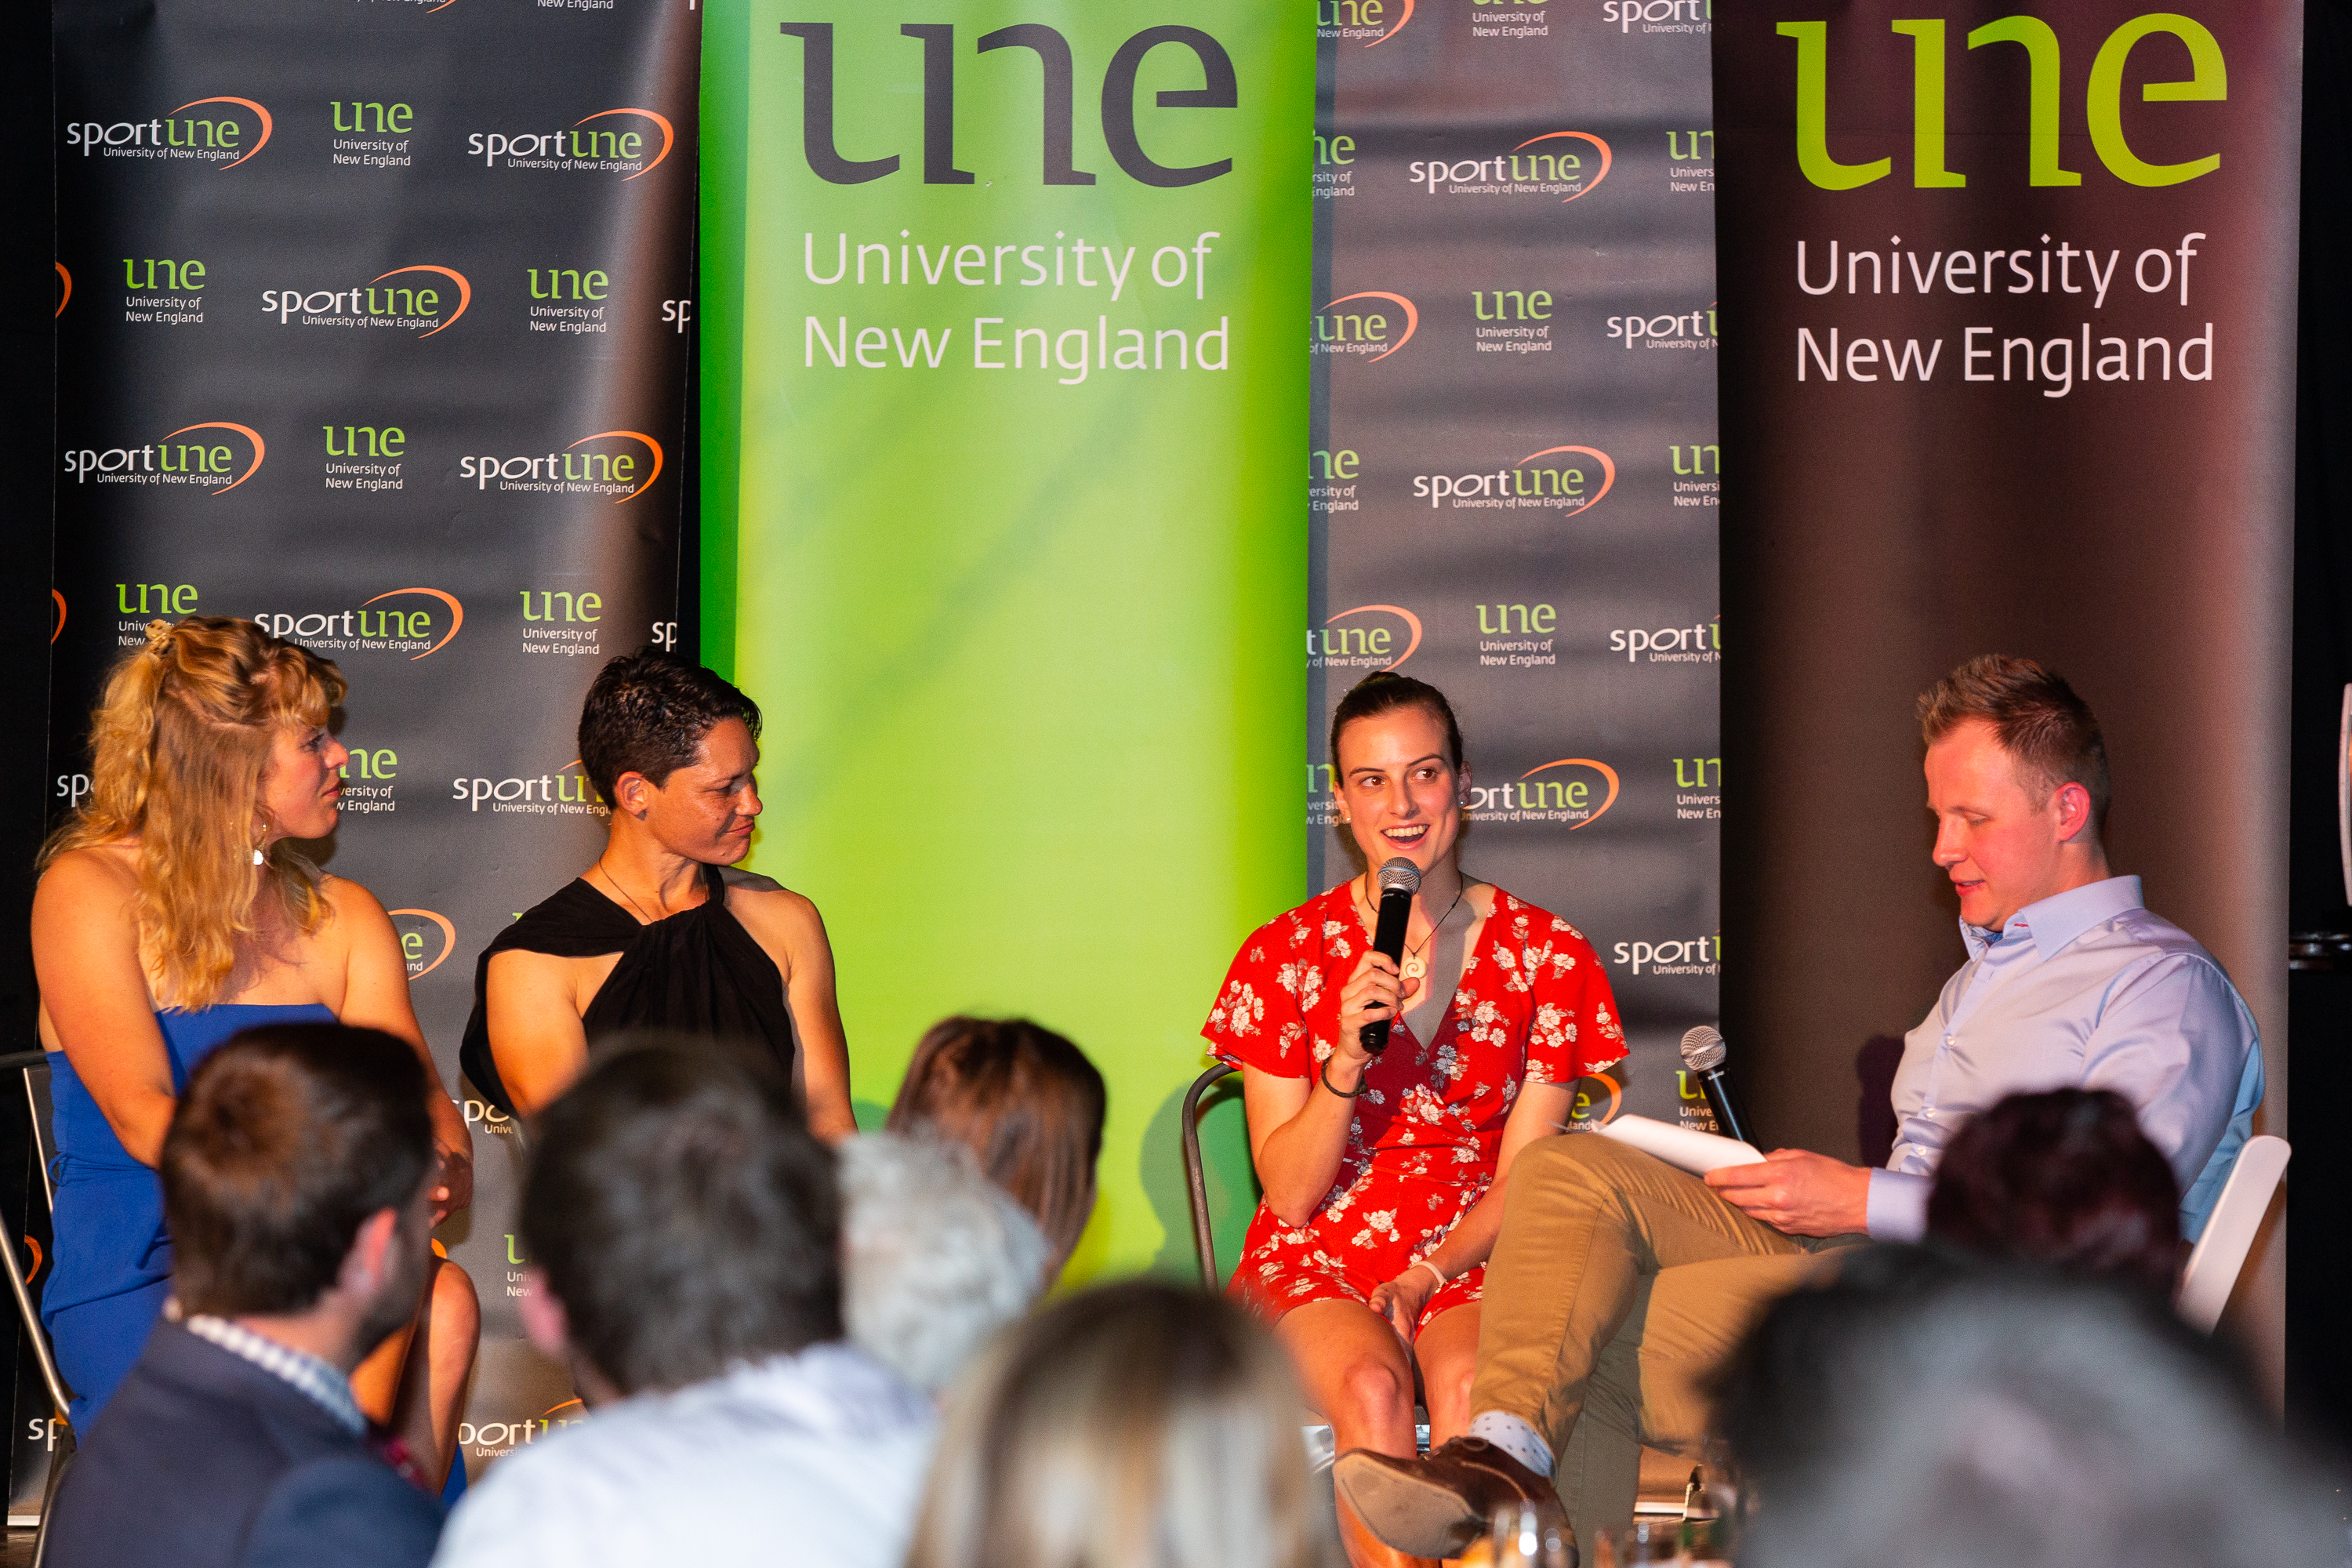 UNE Sport Awards 2019 Panel discussion